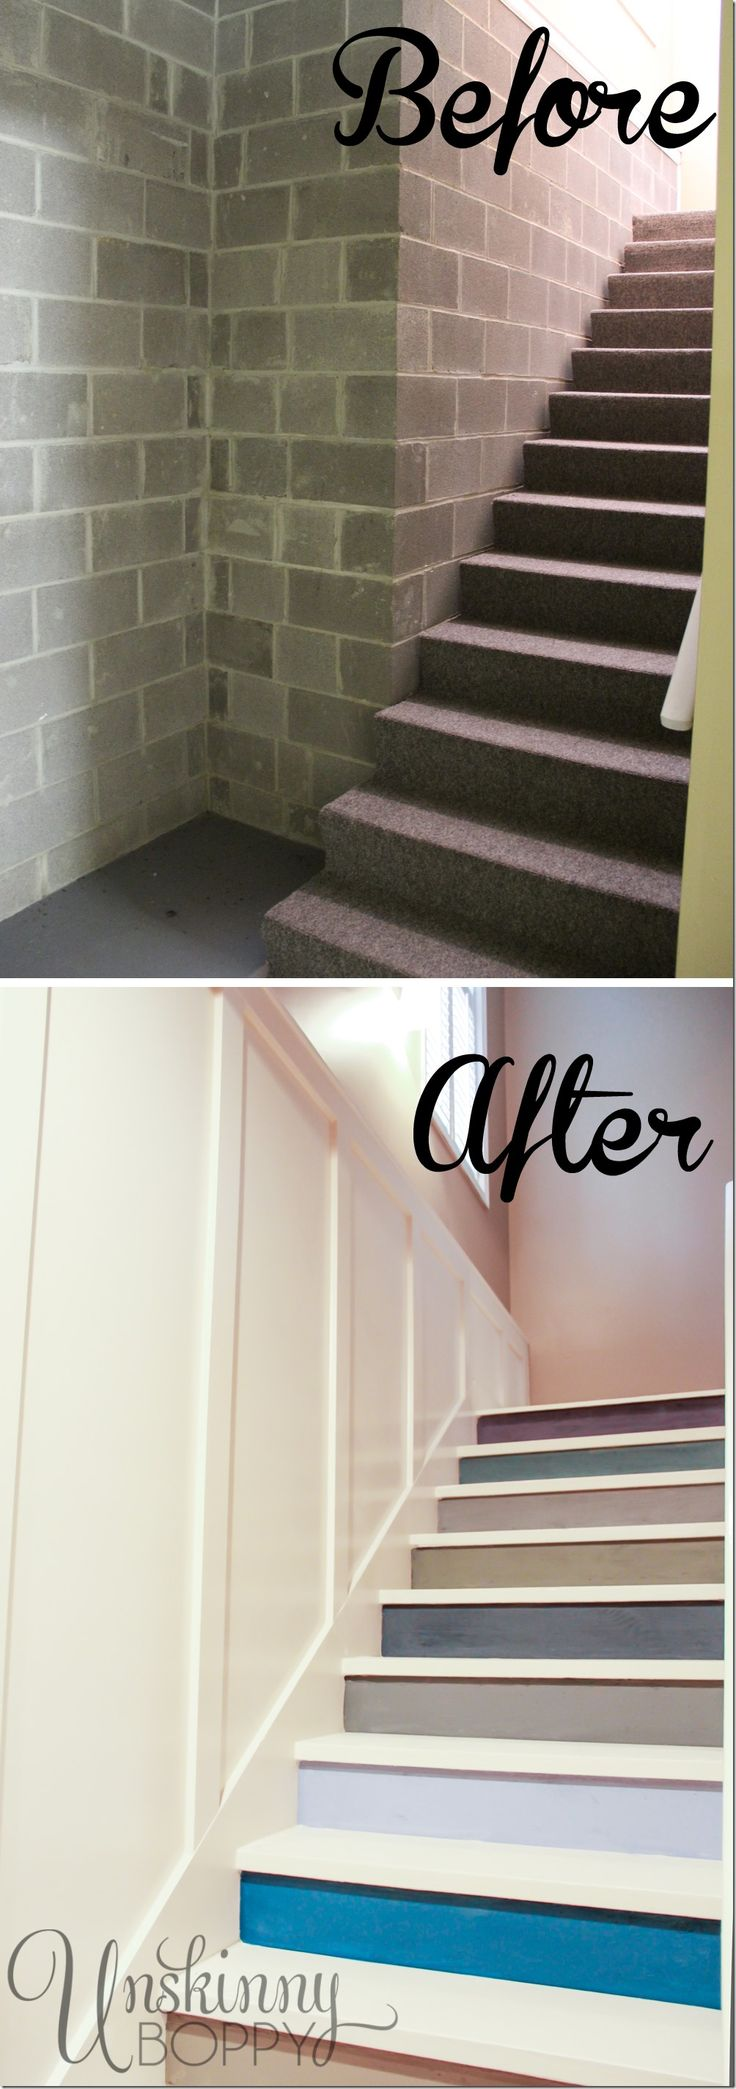 Before and After of Basement stairs painted with multicolored paint | Unskinny Boppy